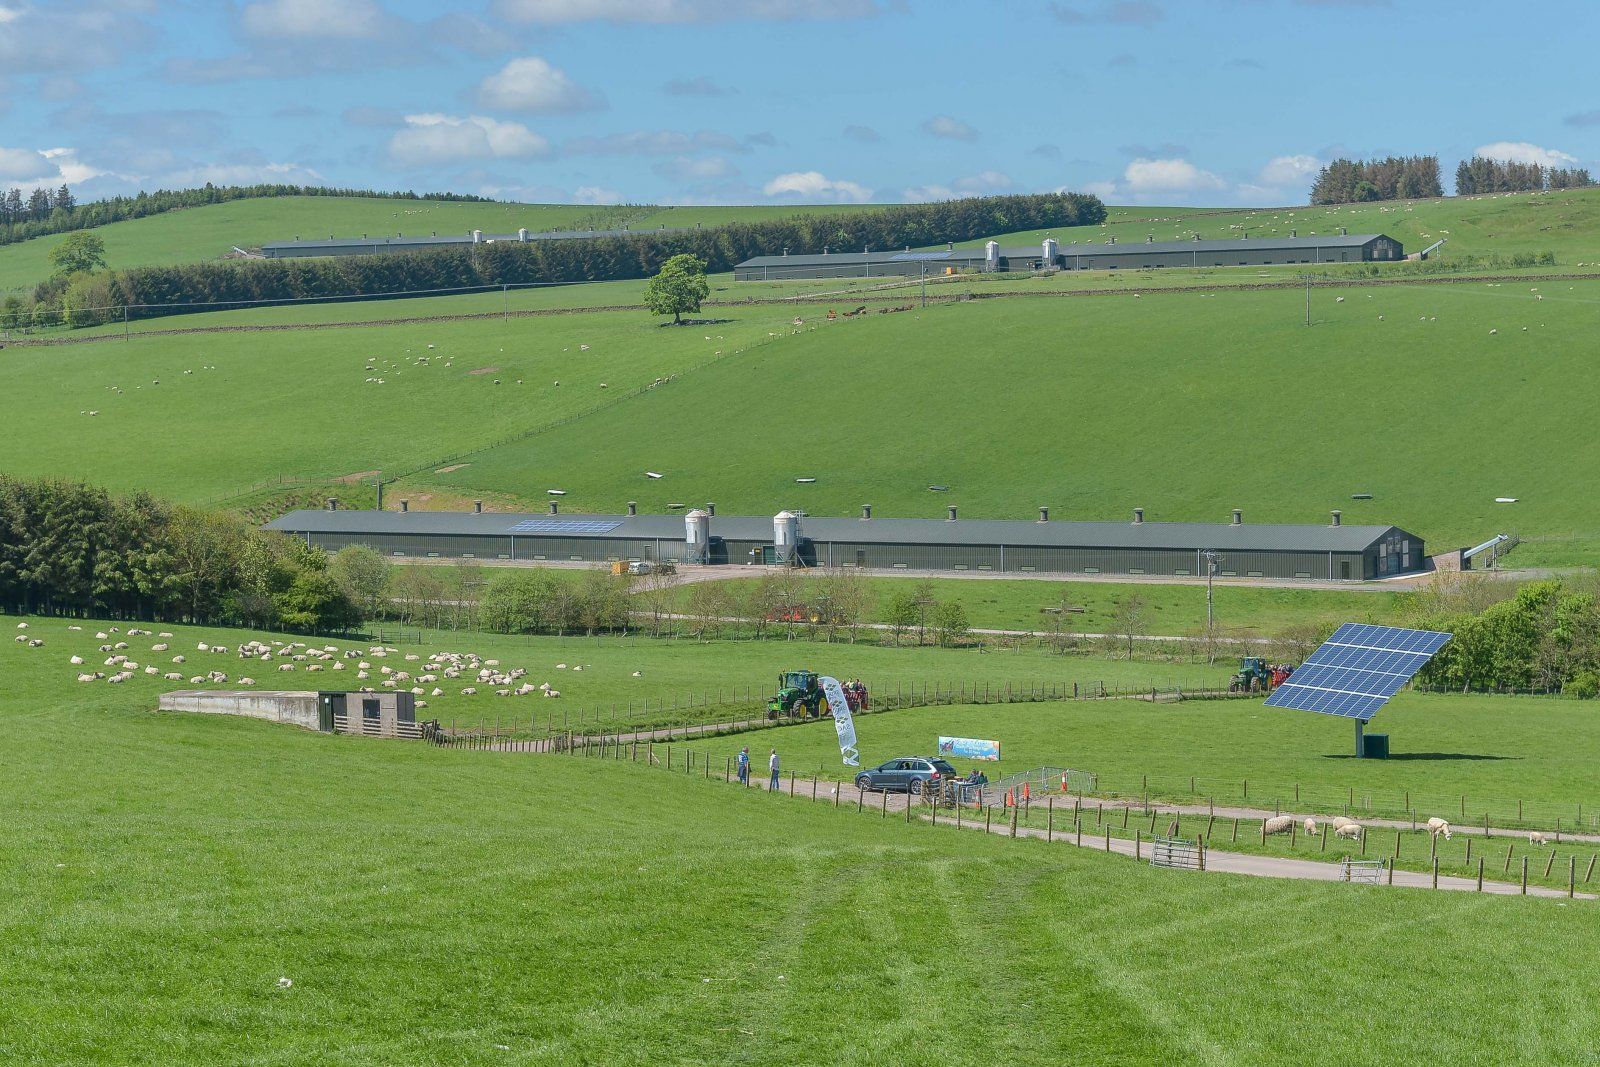 Some of the excellent views visitors were able to take in on the farm tour of Blythbank Farm, hosts of NSA Scot Sheep 2016.